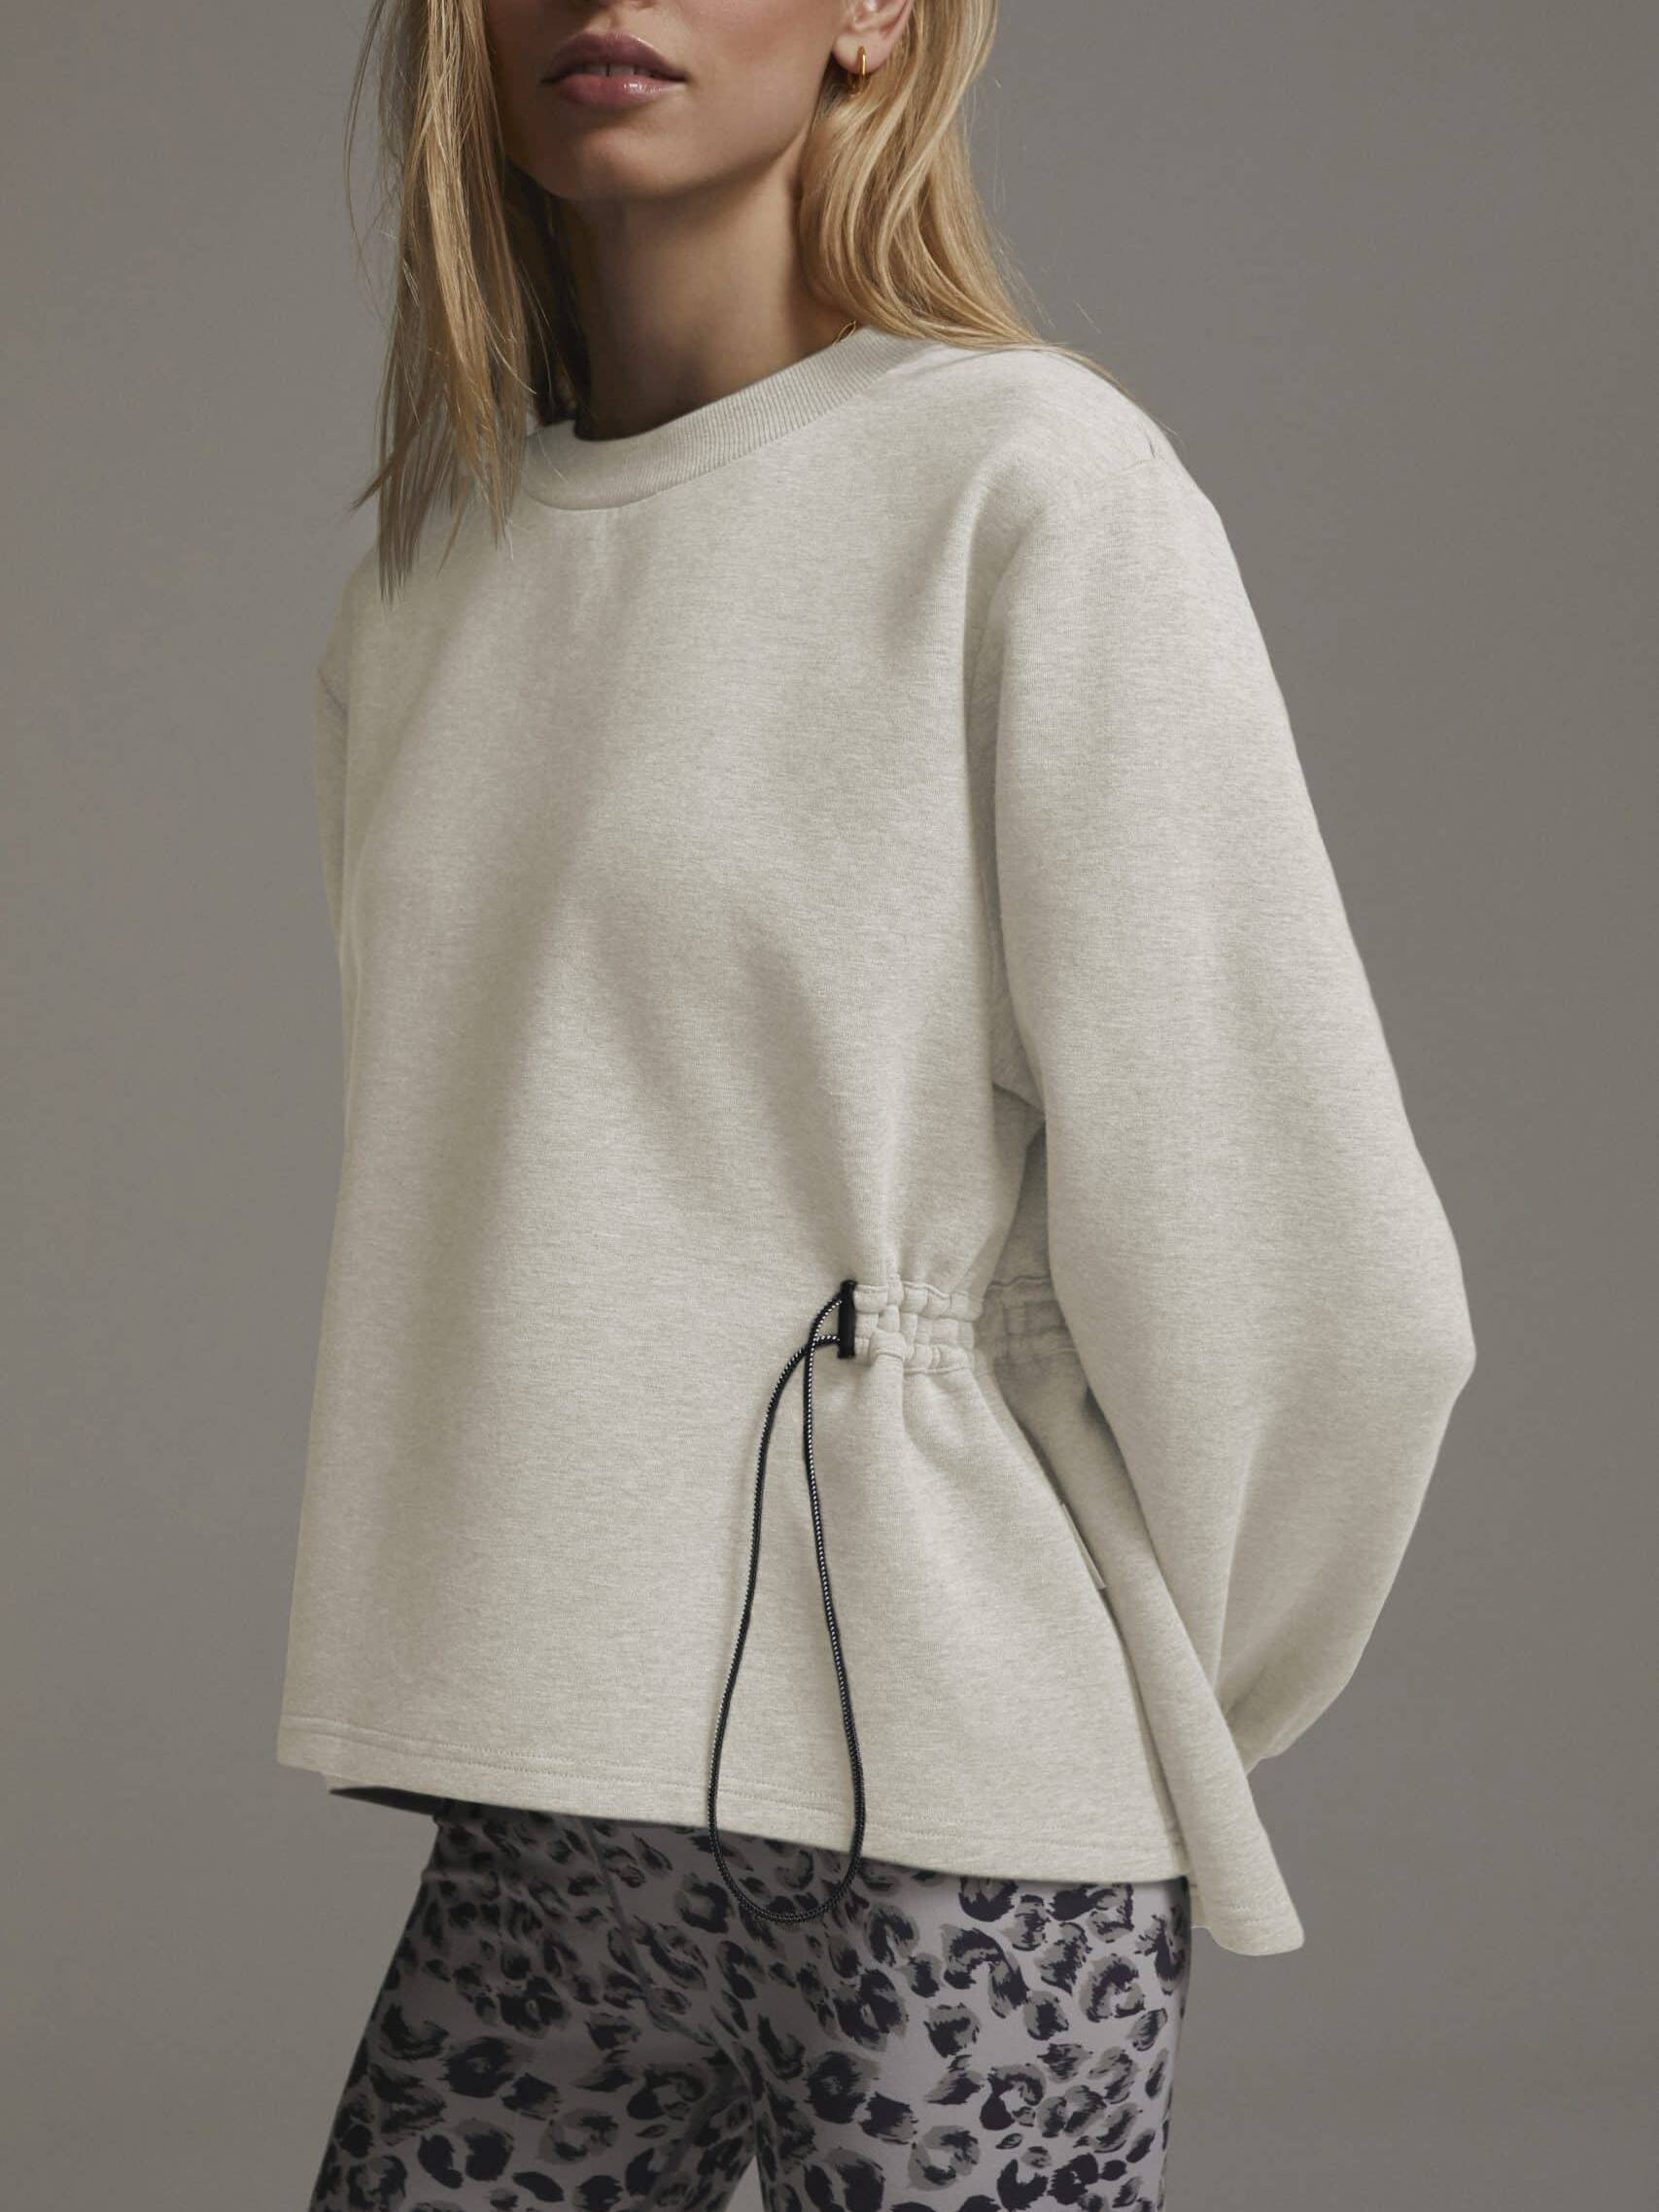 Bella Sweat Ivory Marl, Basic Sweater, Basic Pulli, Heller Sweater, Bella Sweater, oversized Sweater